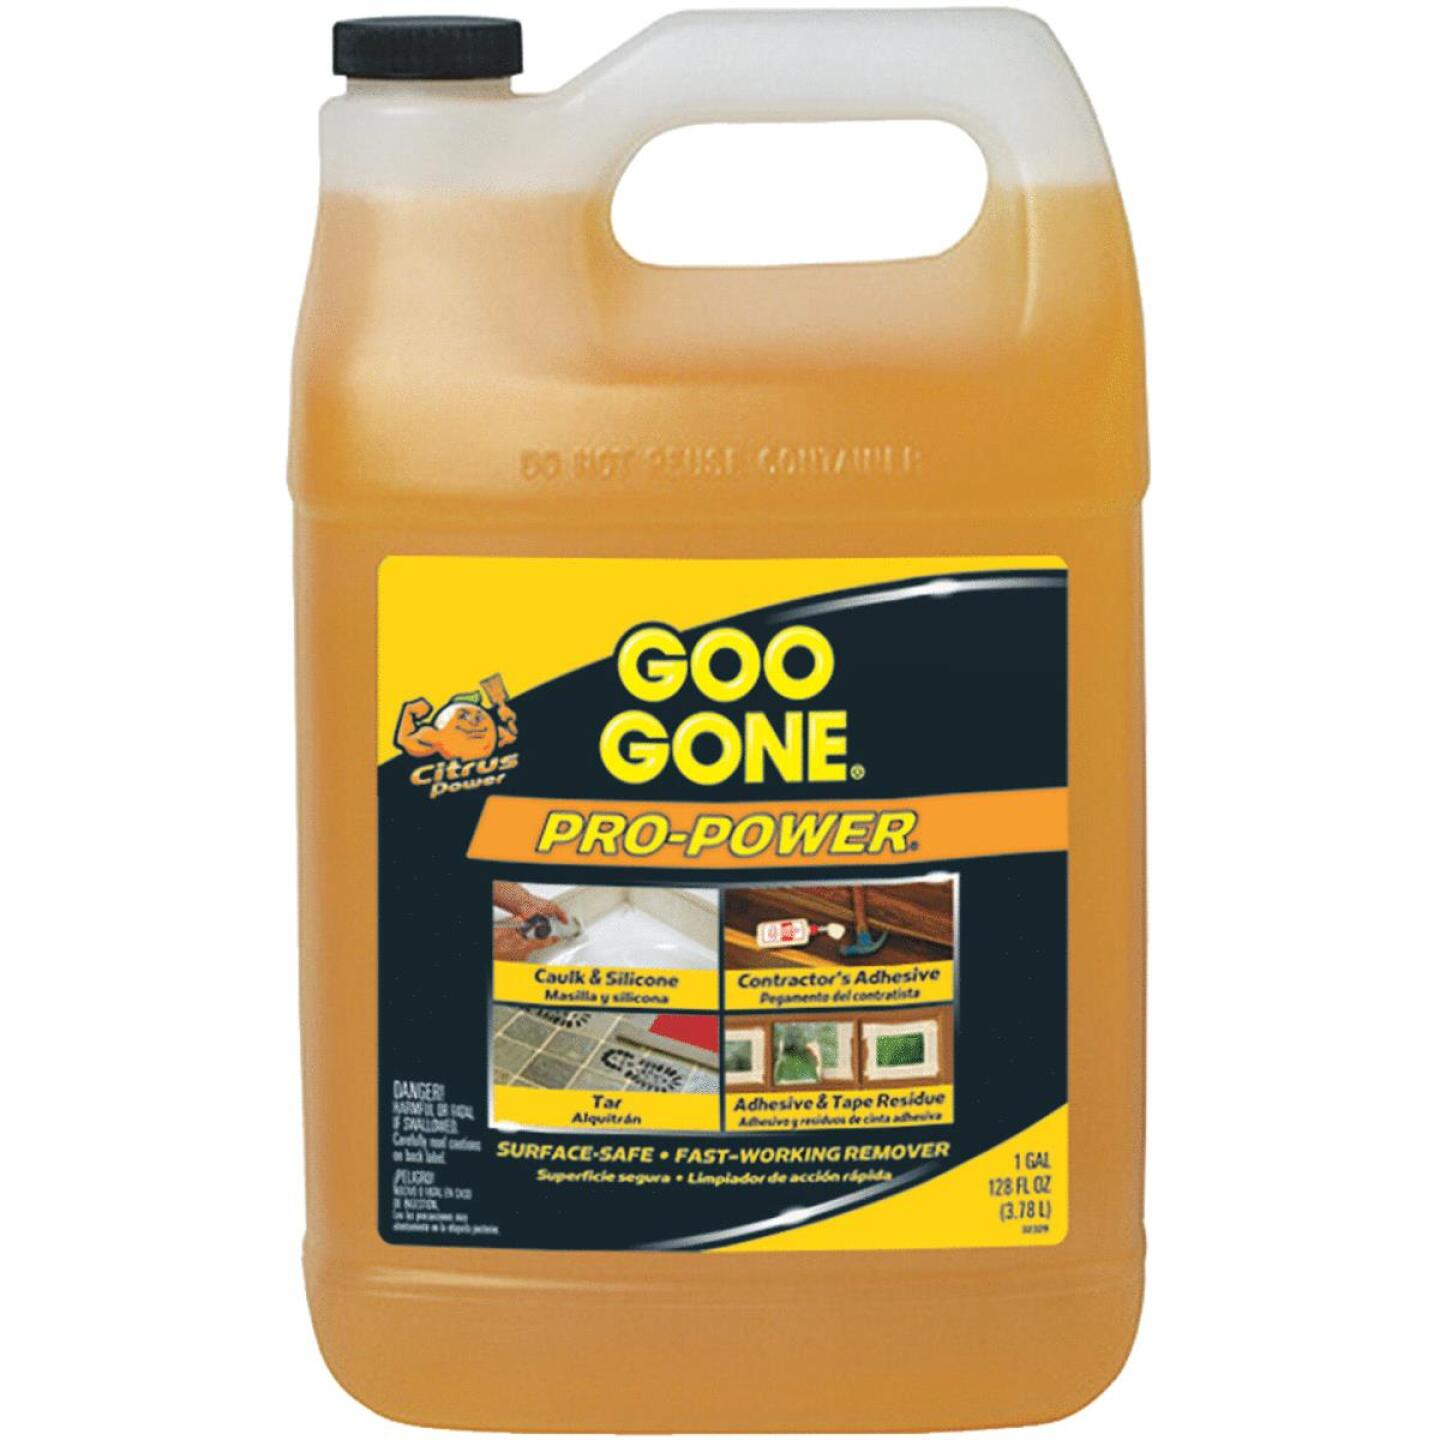 Goo Gone 1 Gal. Pro-Power Adhesive Remover Image 40